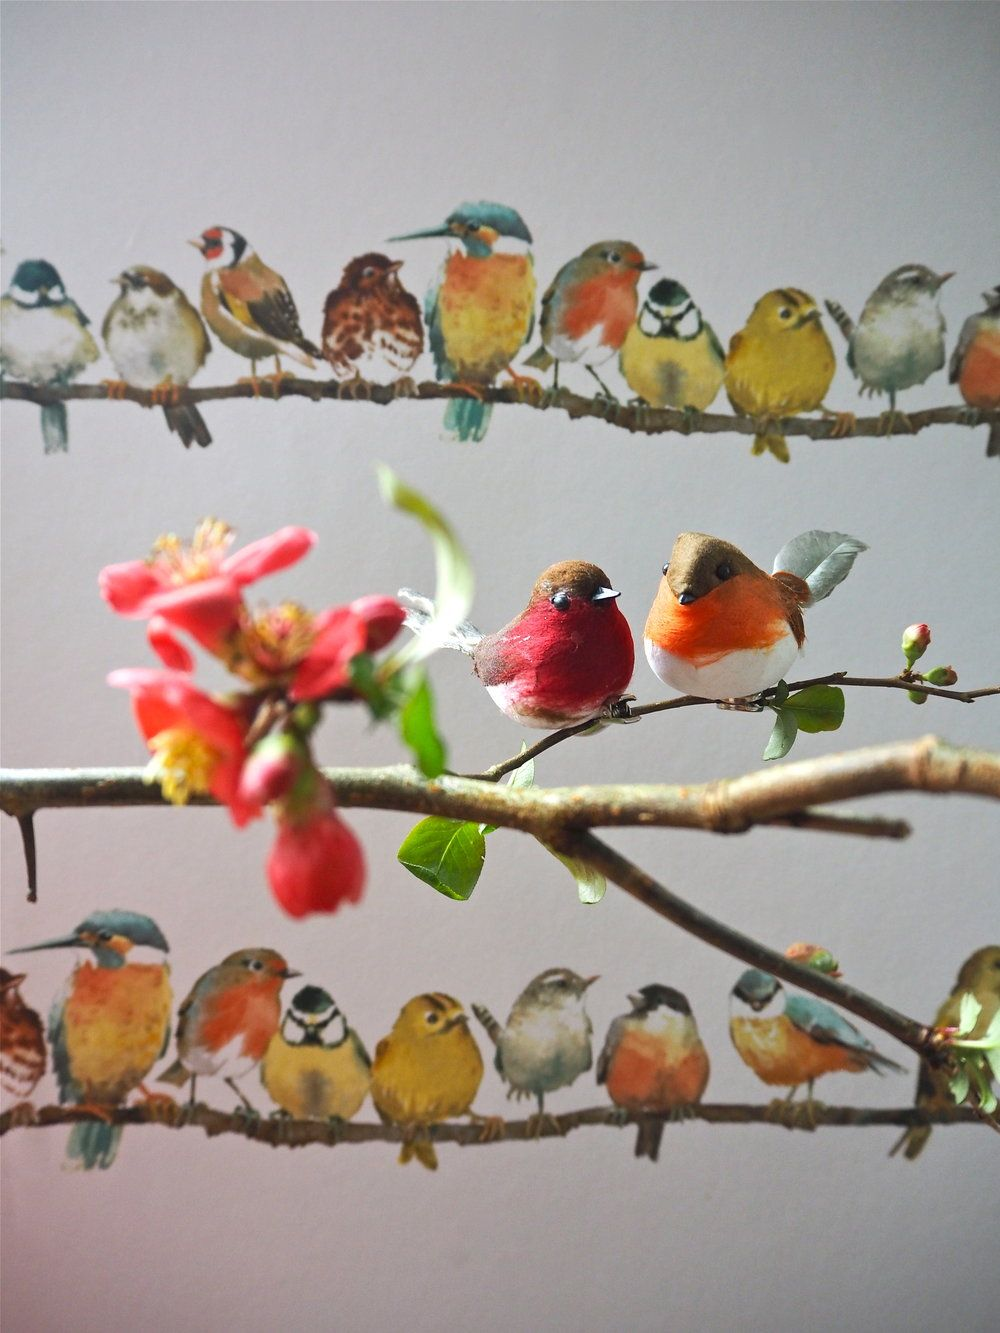 Birds Flowers Butterflies The New Spring Wallpaper Collections